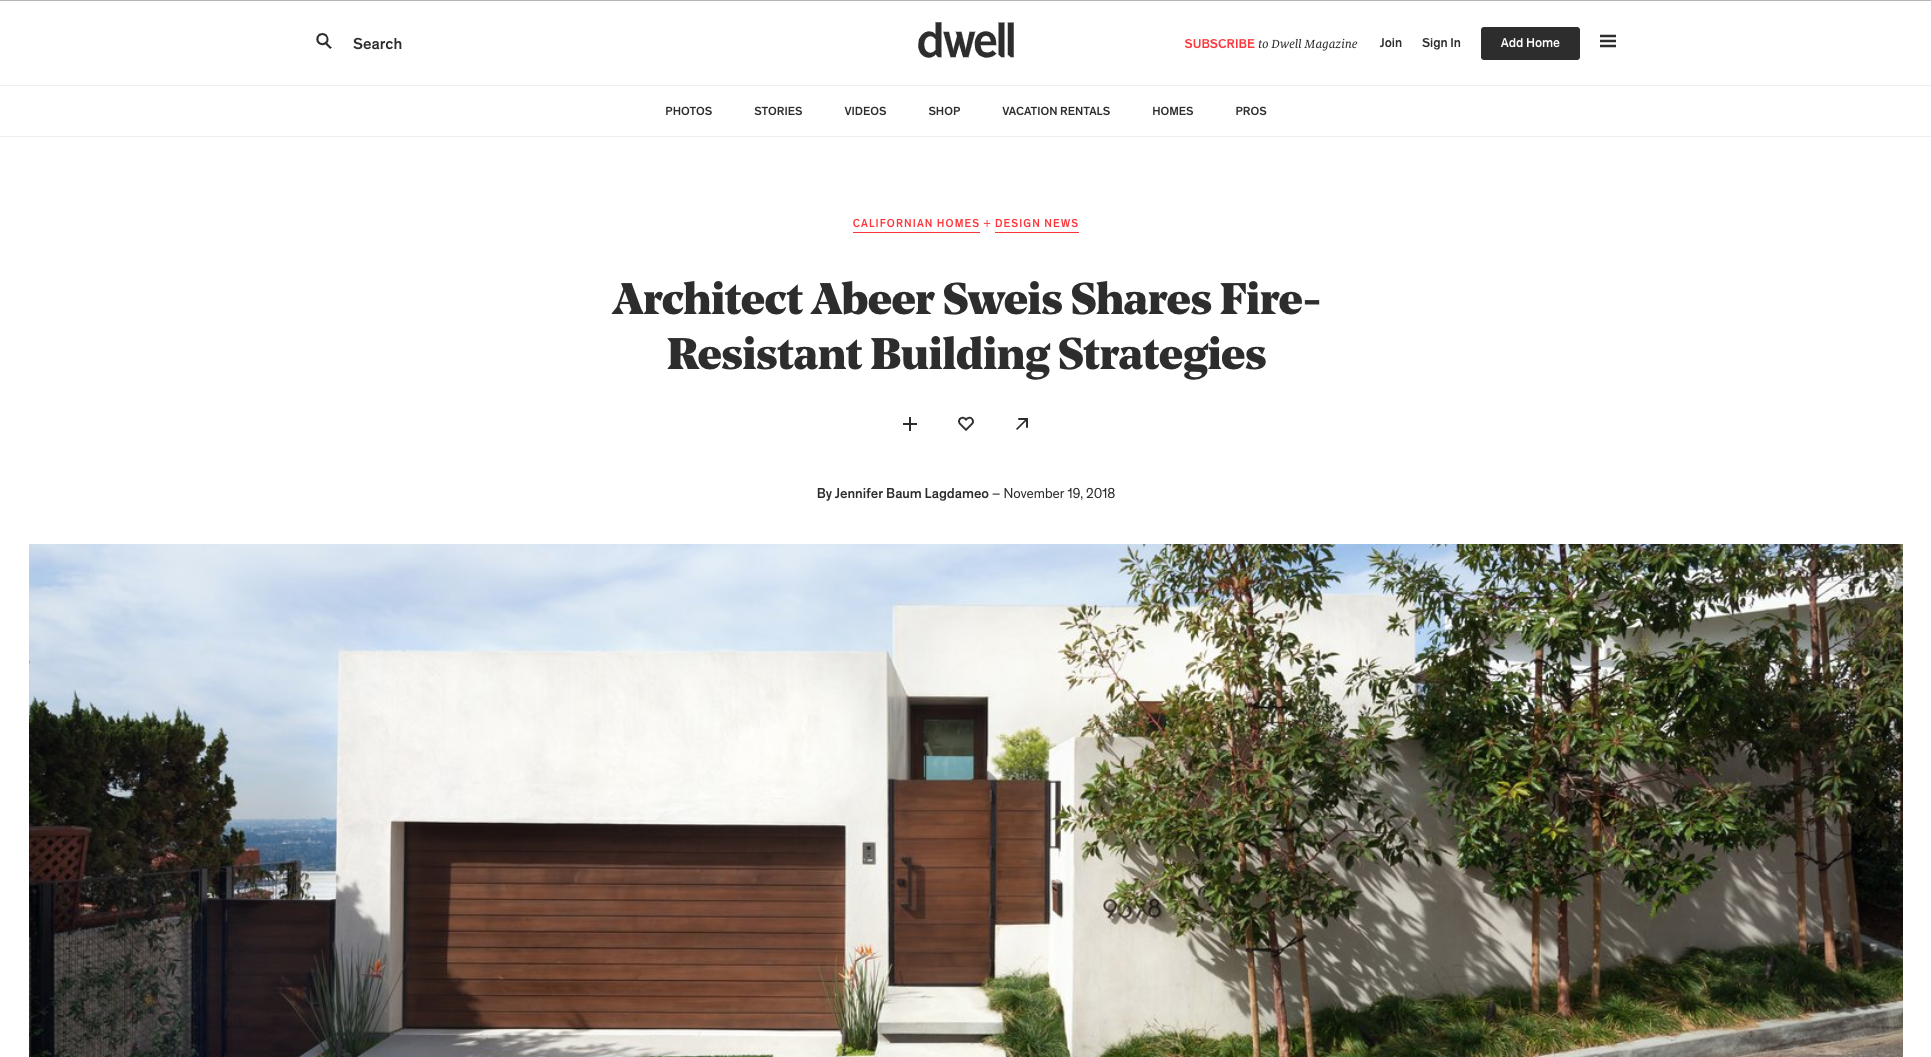 Abeer Sweis Featured in Dwell - Architect Abeer Sweis Shares Fire-Resistant Building Strategies